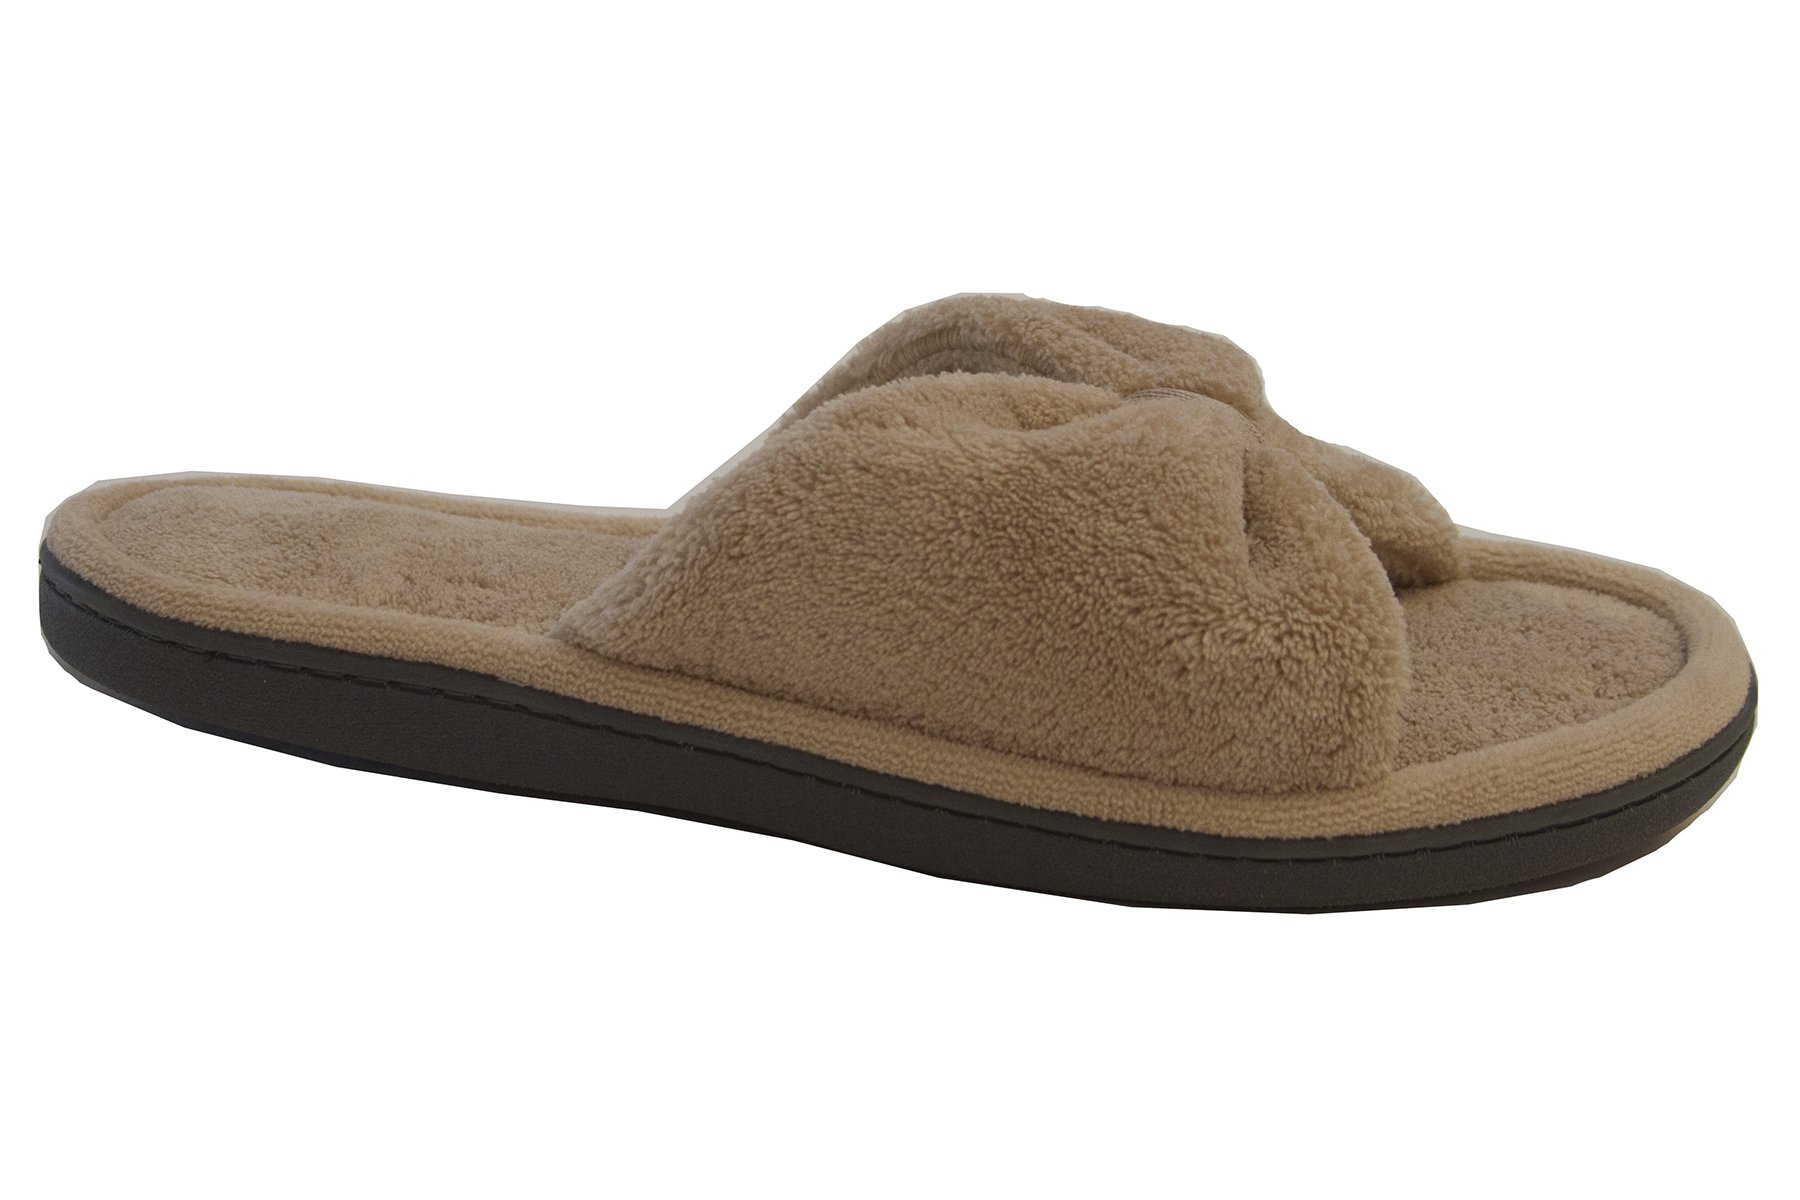 Isotoner Women's Microterry Bow Open Toe Slide Slipper, Sandtrap, 7.5-8